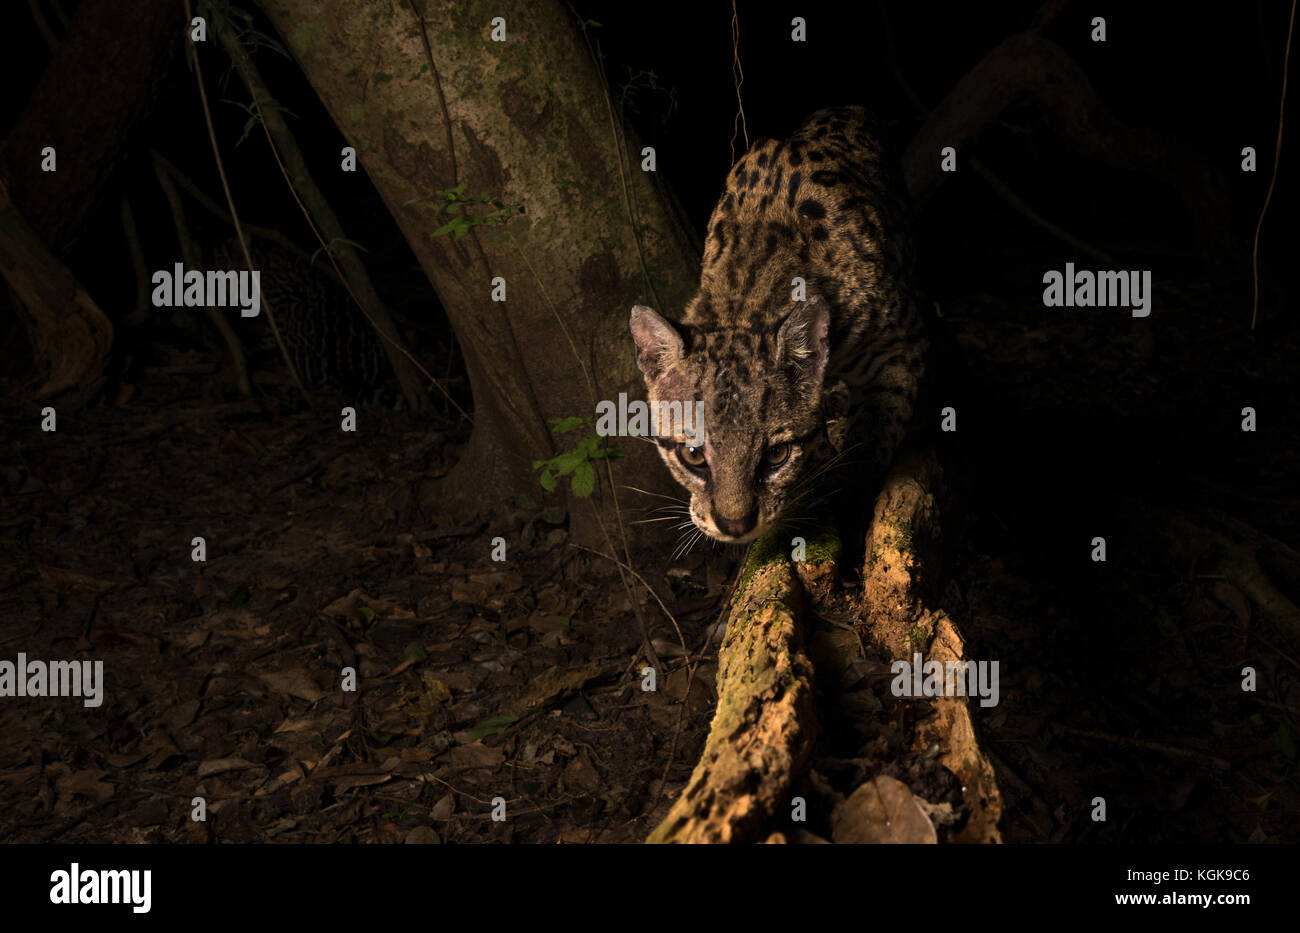 Ocelot from the Pantanal, Brazil - Stock Image